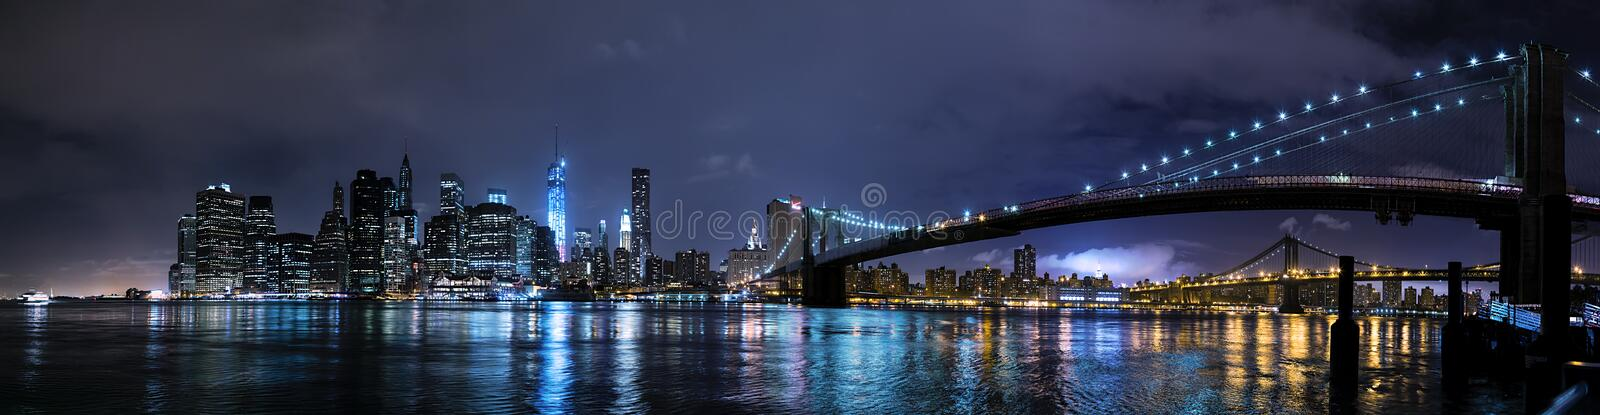 De Stad van New York, NY/USA - circa Juli 2015: Panorama van de Brug en 's nachts het Lower Manhattan van Brooklyn stock foto